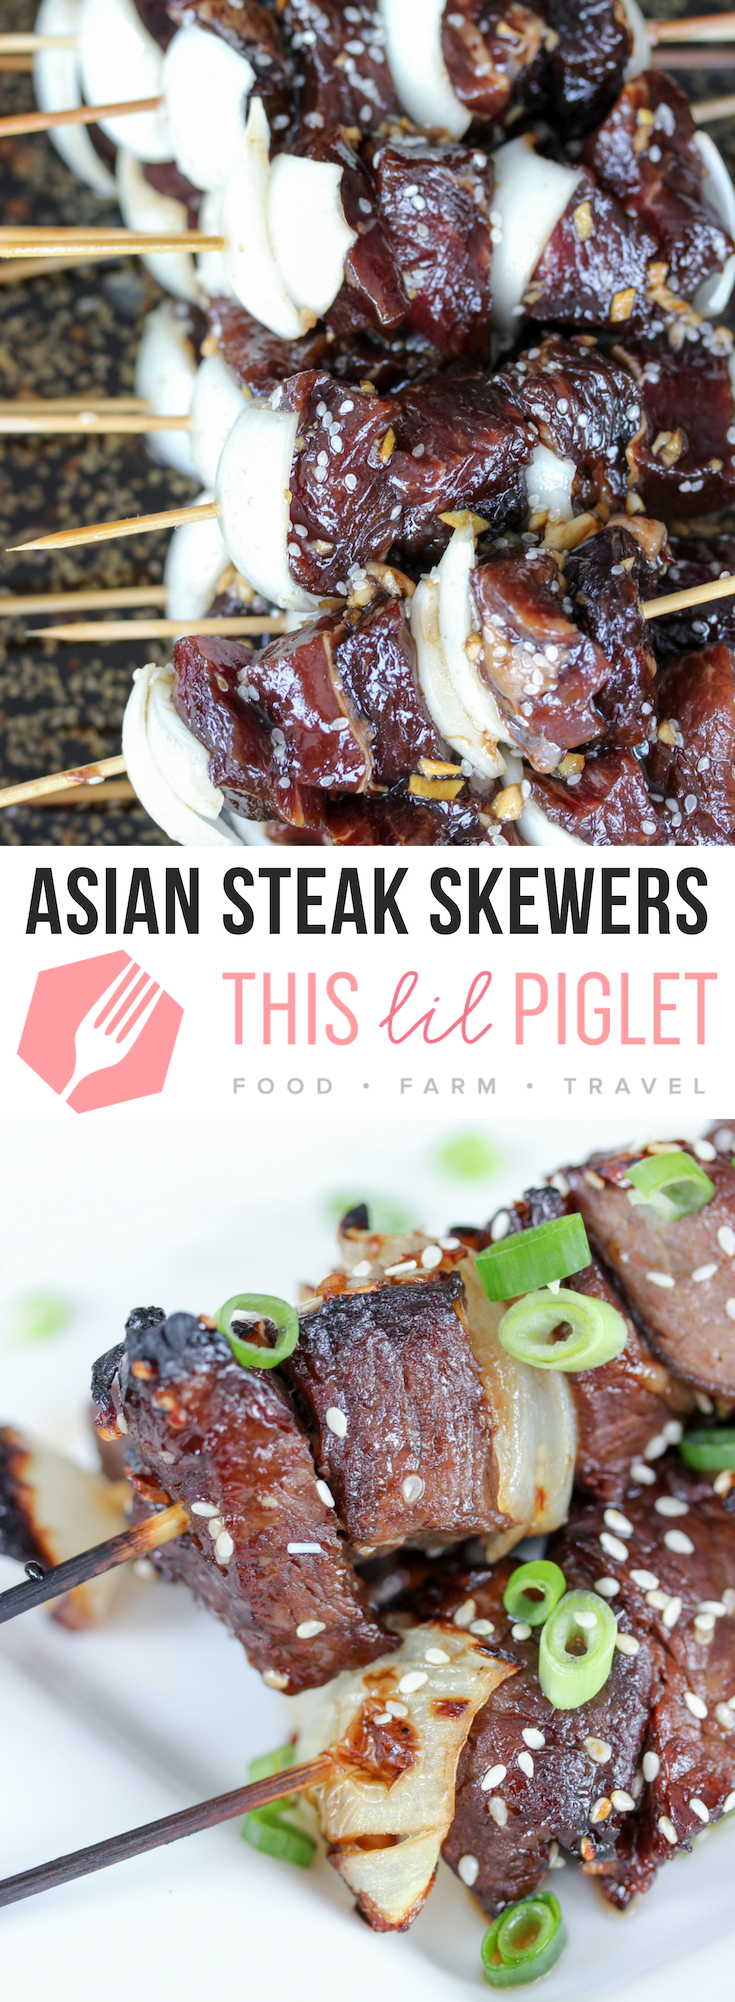 Asian Steak Skewers Appetizer // thislilpiglet.net